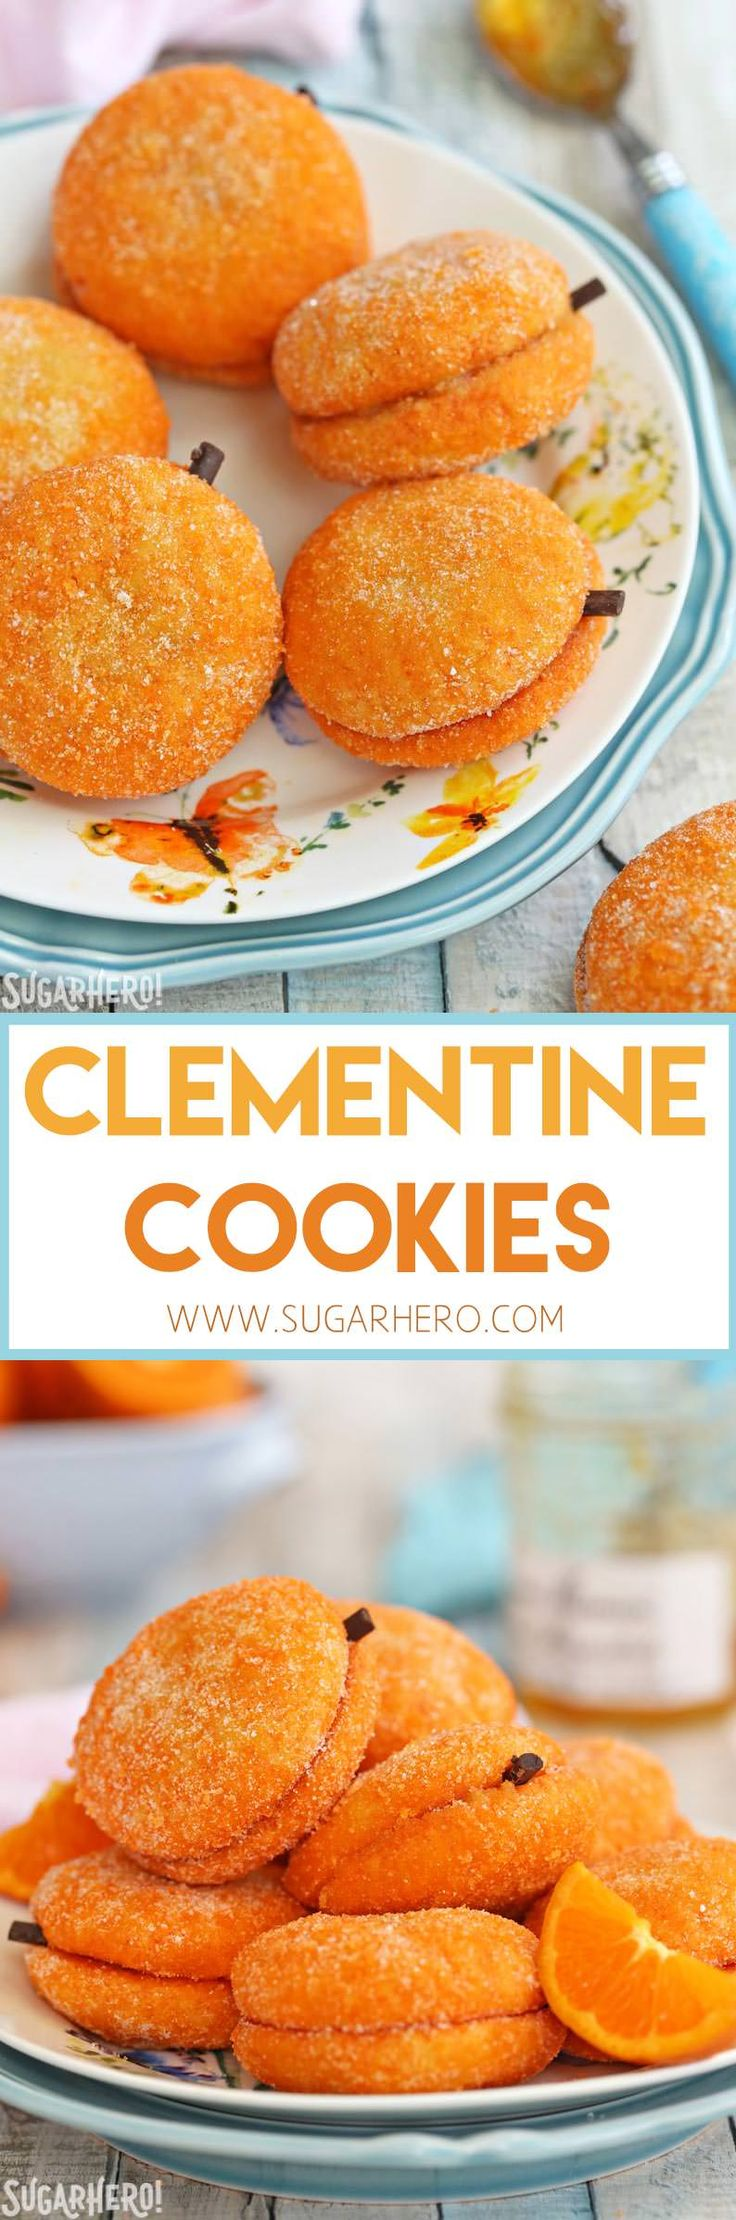 Clementine Cookies - beautiful sandwich cookies that look AND taste like real clementines! | From SugarHero.com